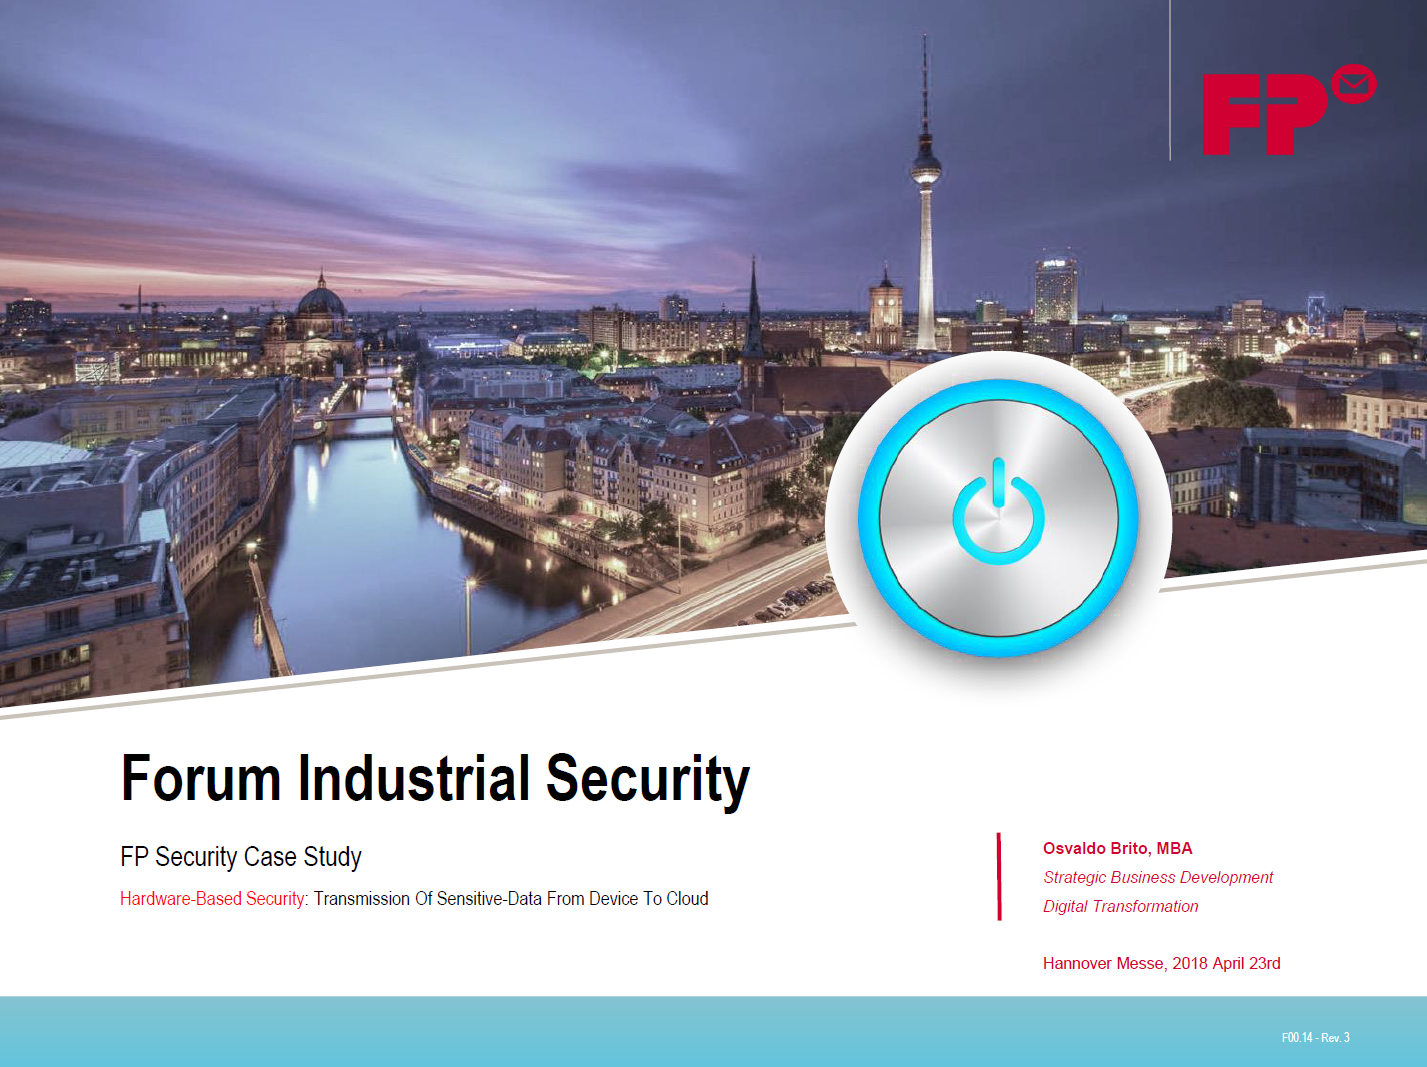 hannover-messe-2018-_forum-industrial-security.png